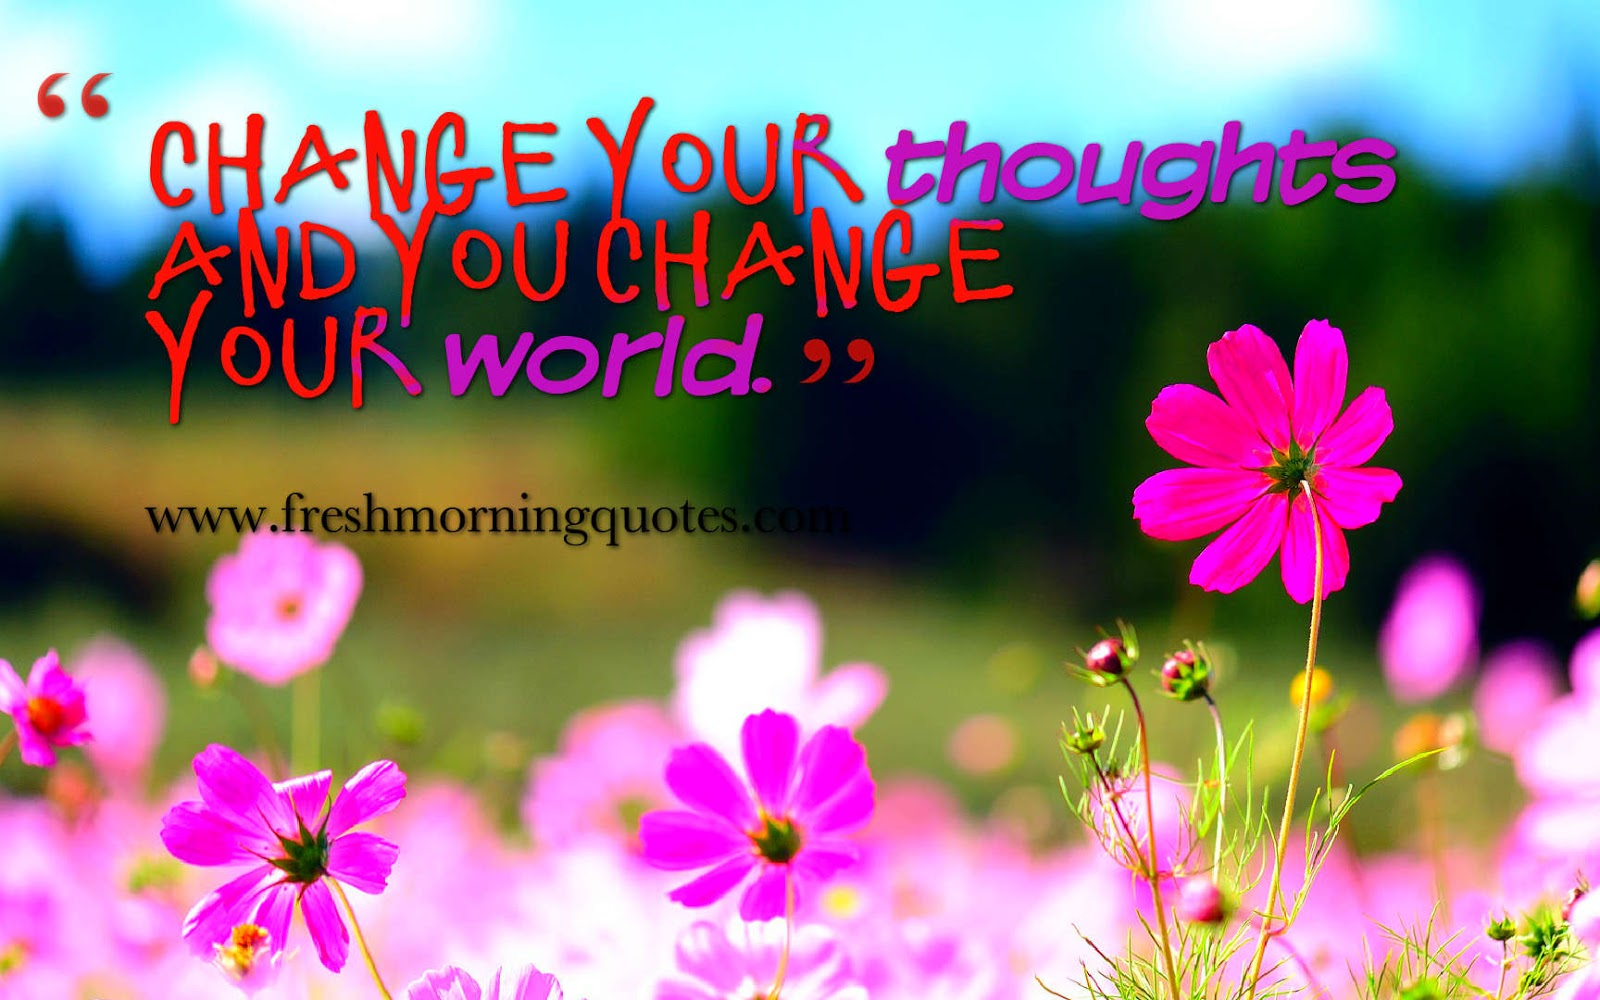 Change your thoughts and you change your world positive good morning quotes